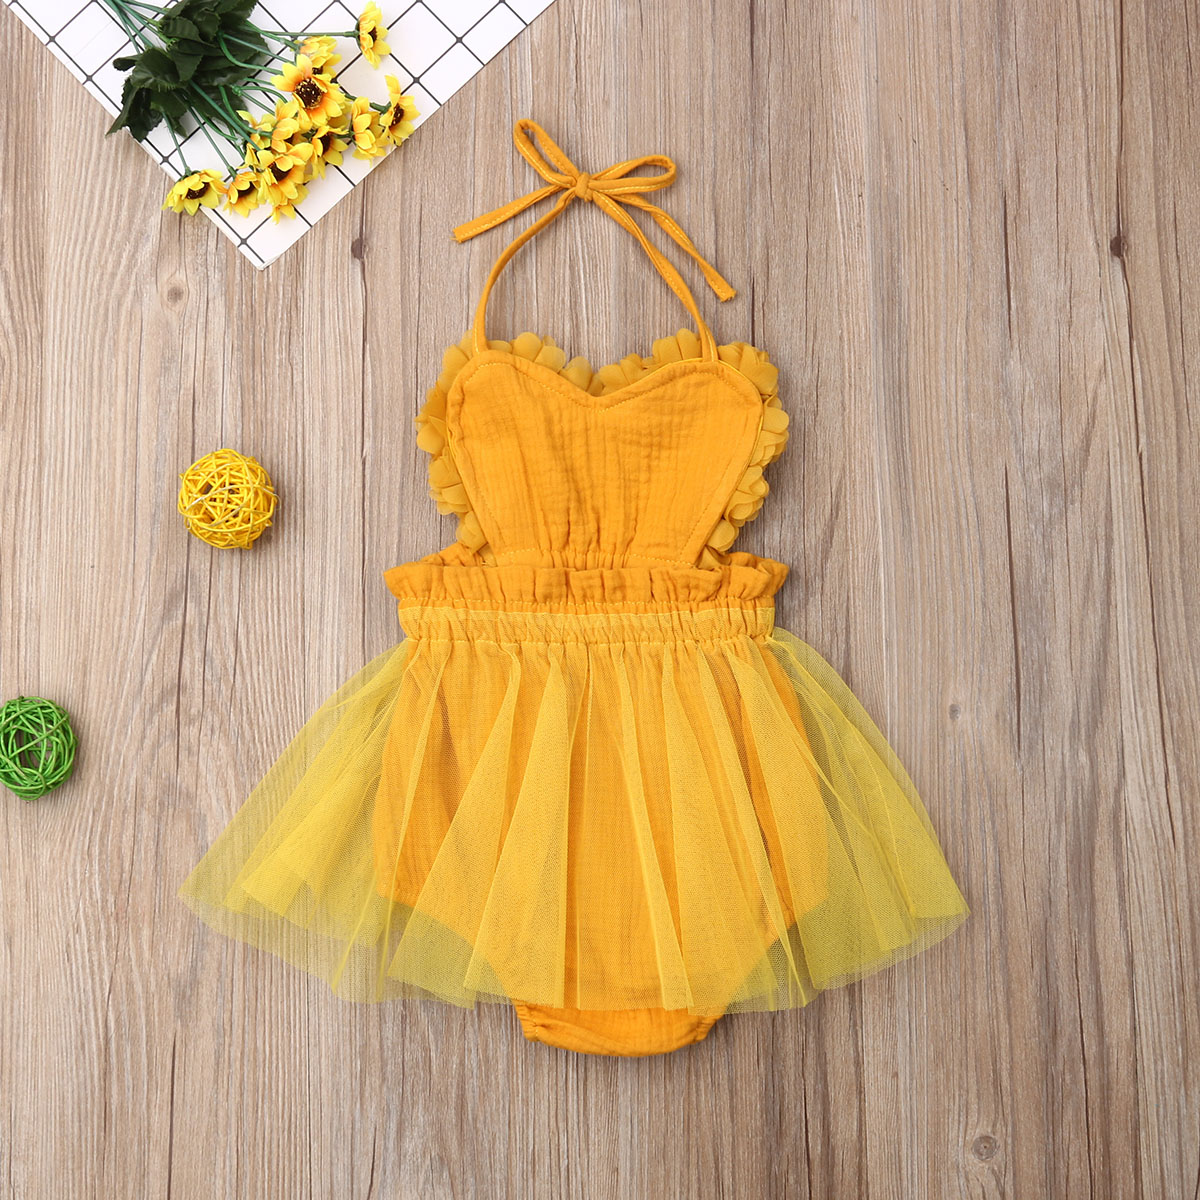 2020 New Cute Baby Girl Bodysuit Dress Halter Lace-up Lace Sundress Summer Baby Girl Sleeveless Backless Tulle Dress 0-18M